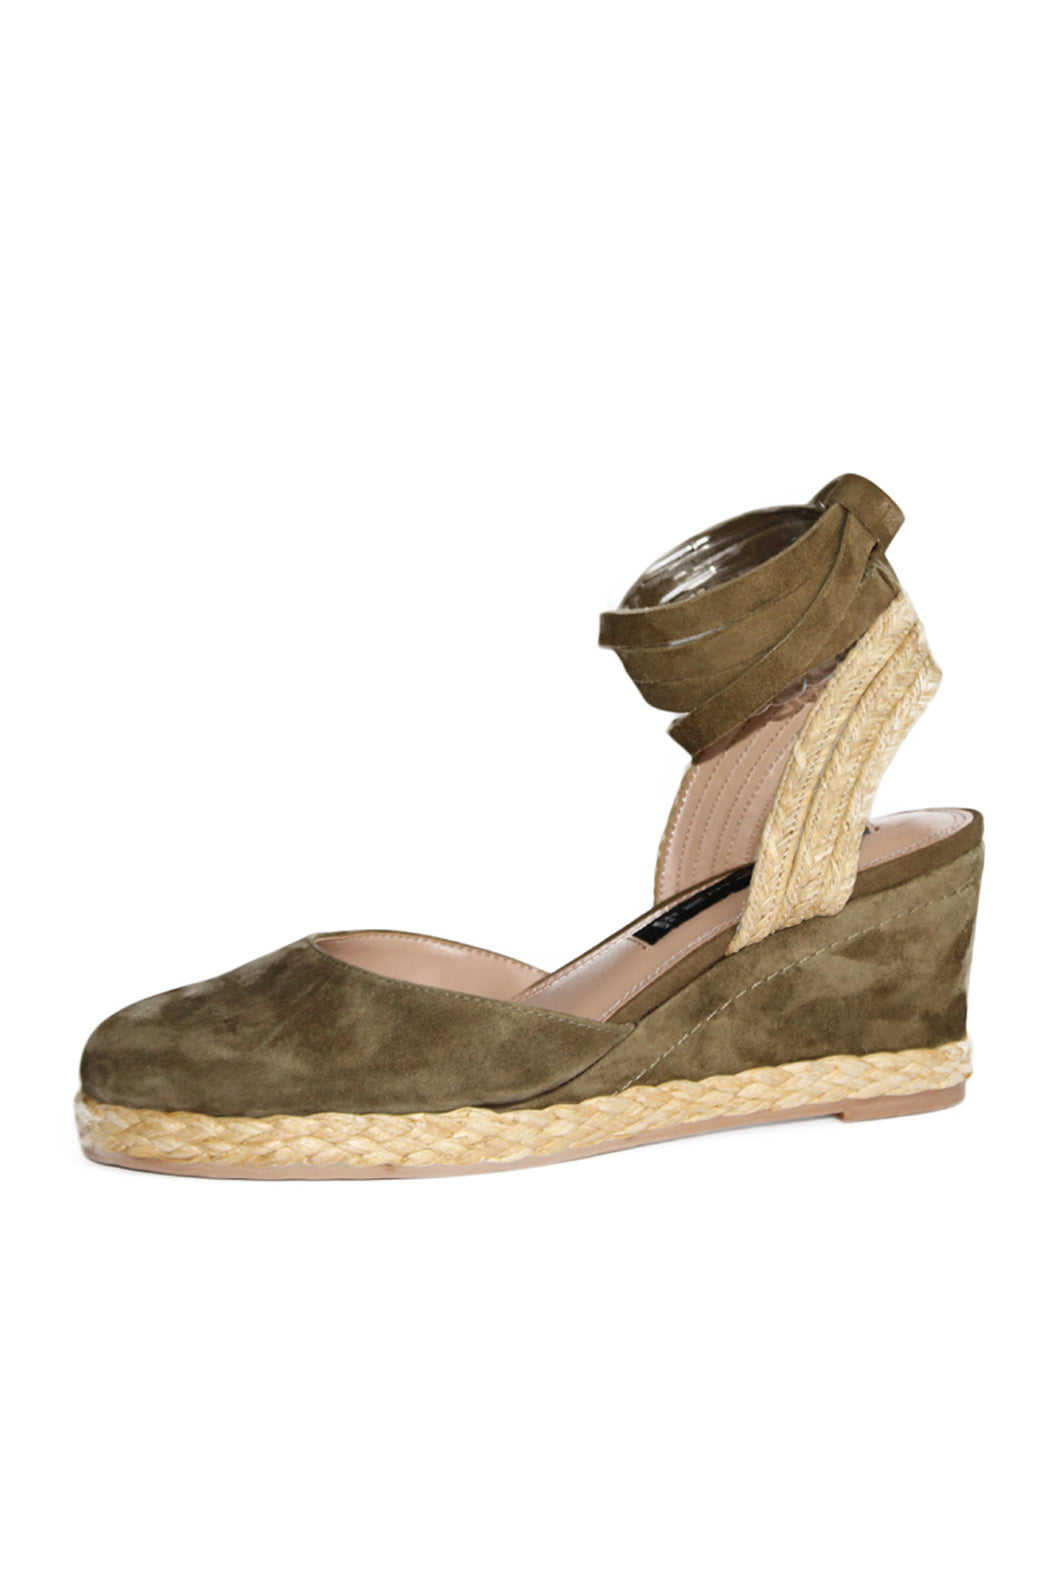 espadrille wedge,, suede upper, rounded toe, padded insole